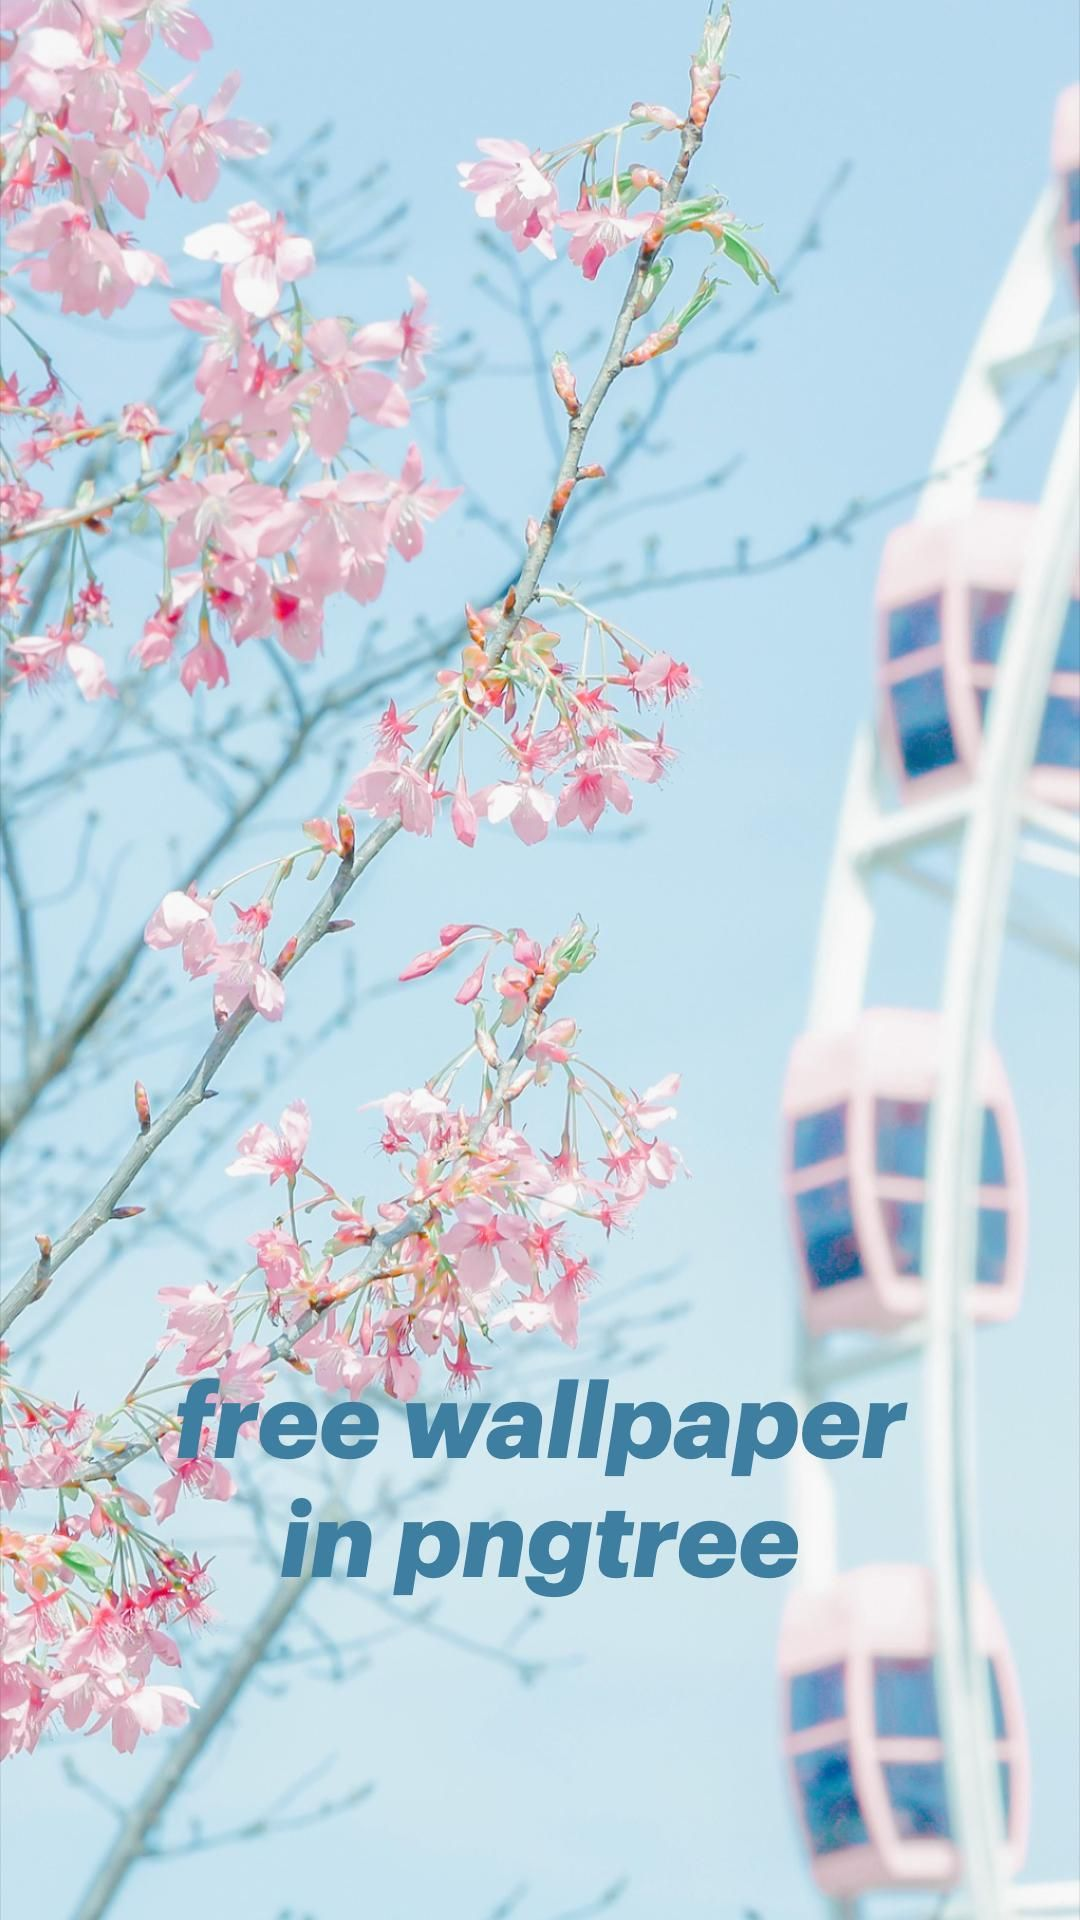 free wallpaper in pngtree